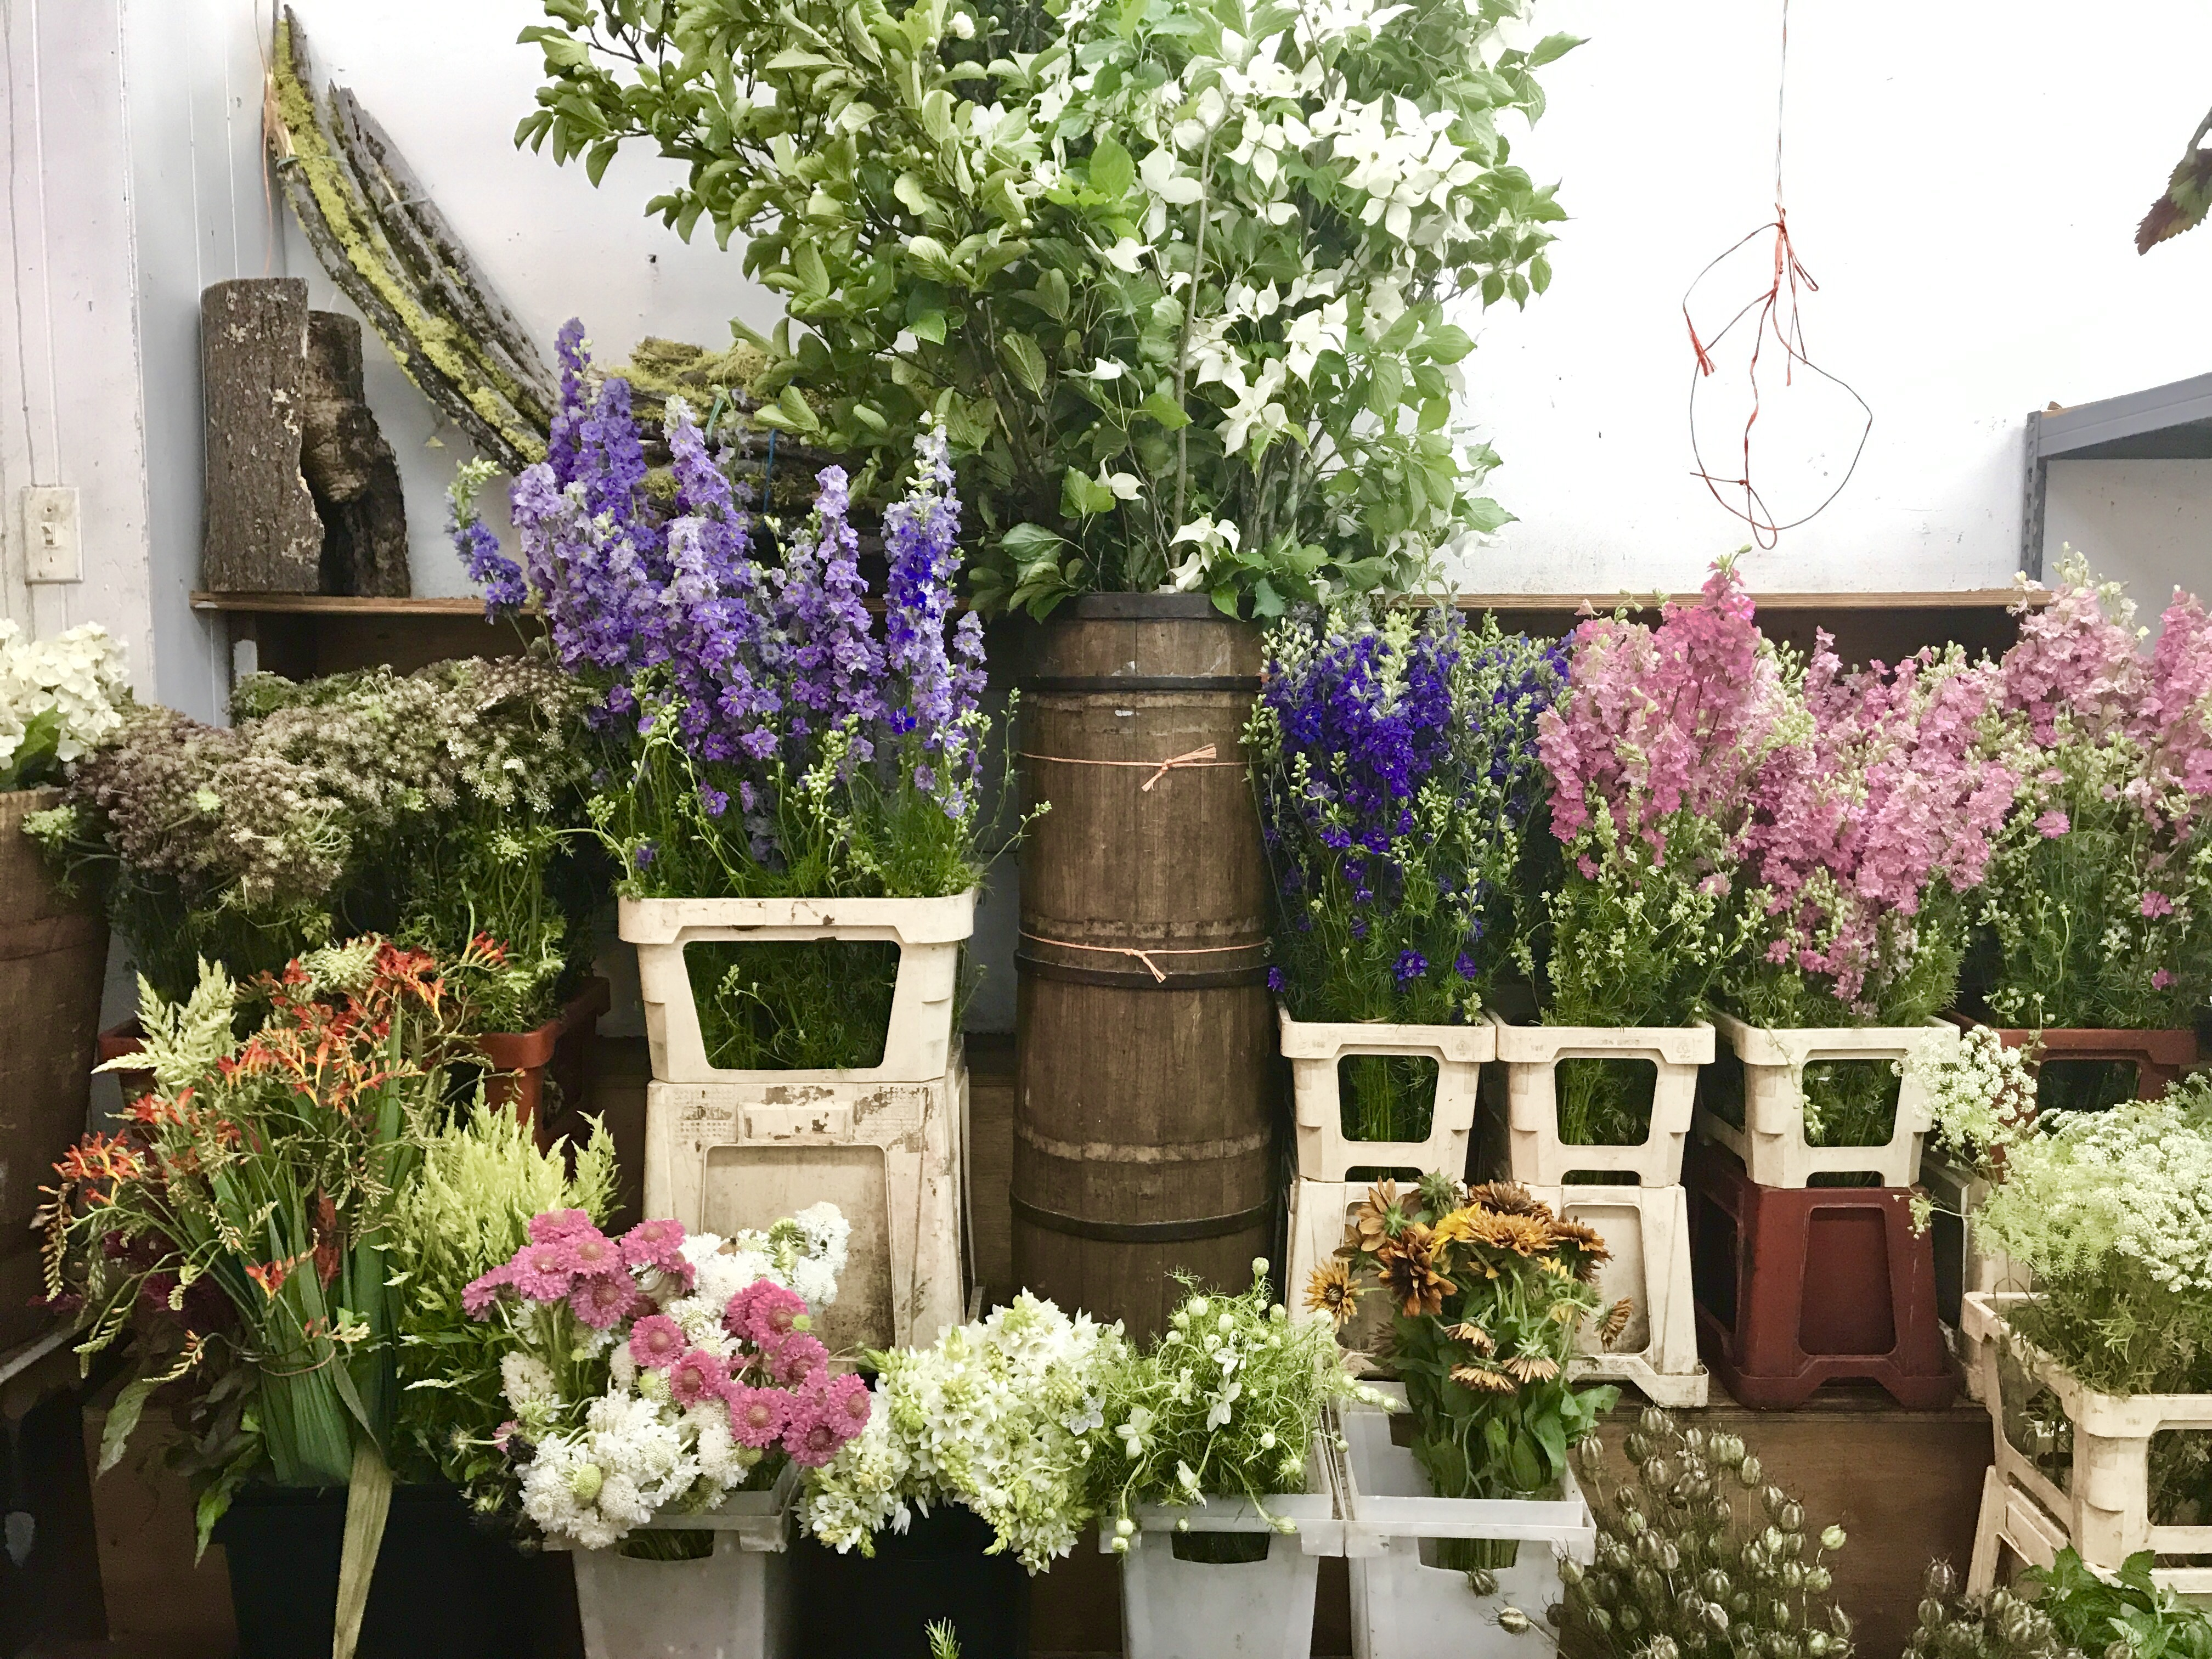 SPEND A MORNING IN THE CHELSEA FLOWER MARKET